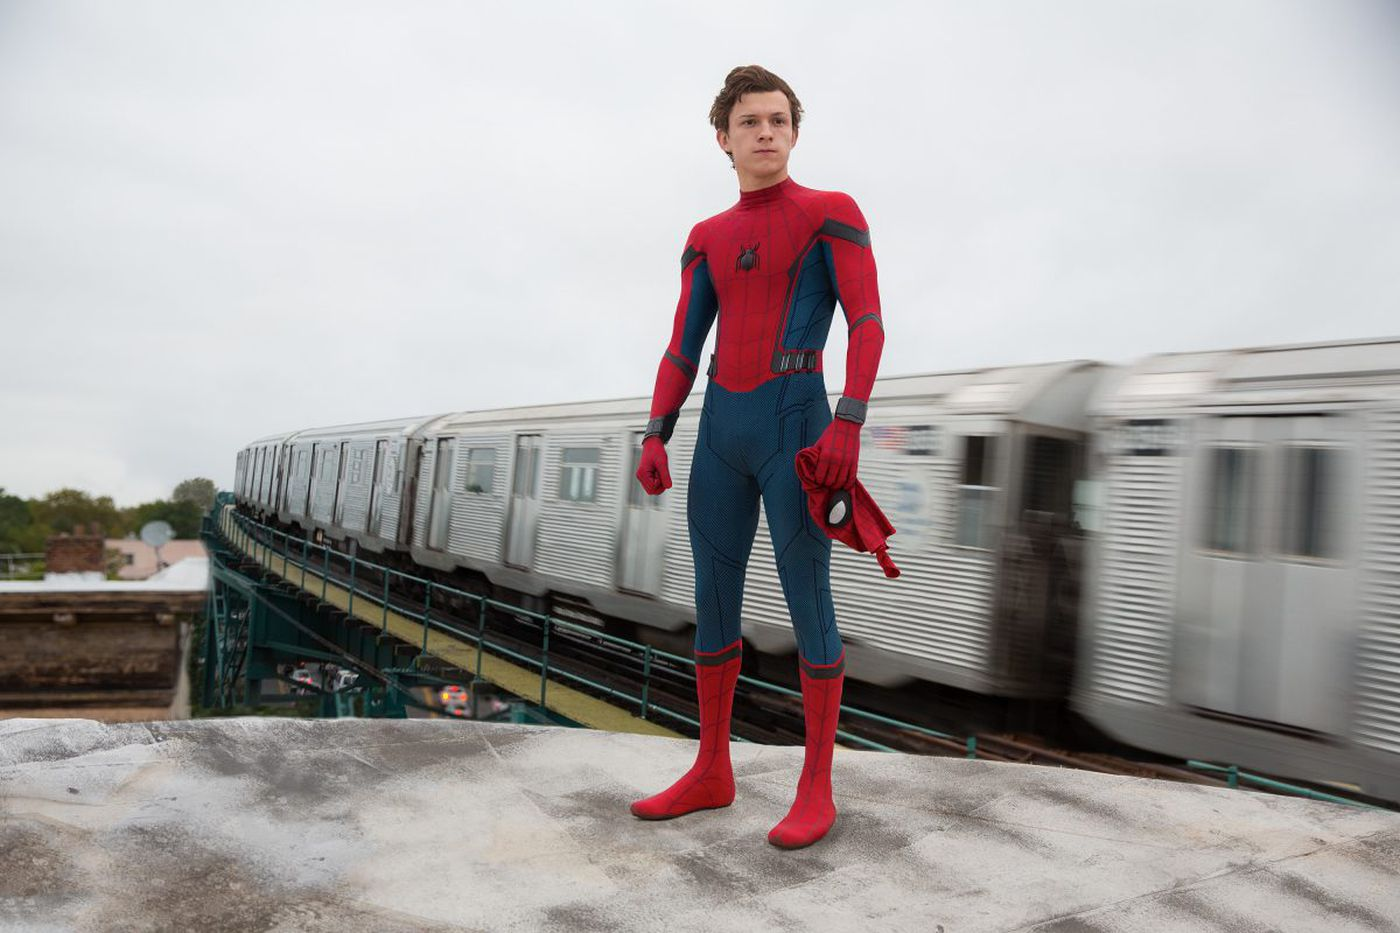 Summer movies: Superheroes depart, and it's back to reality